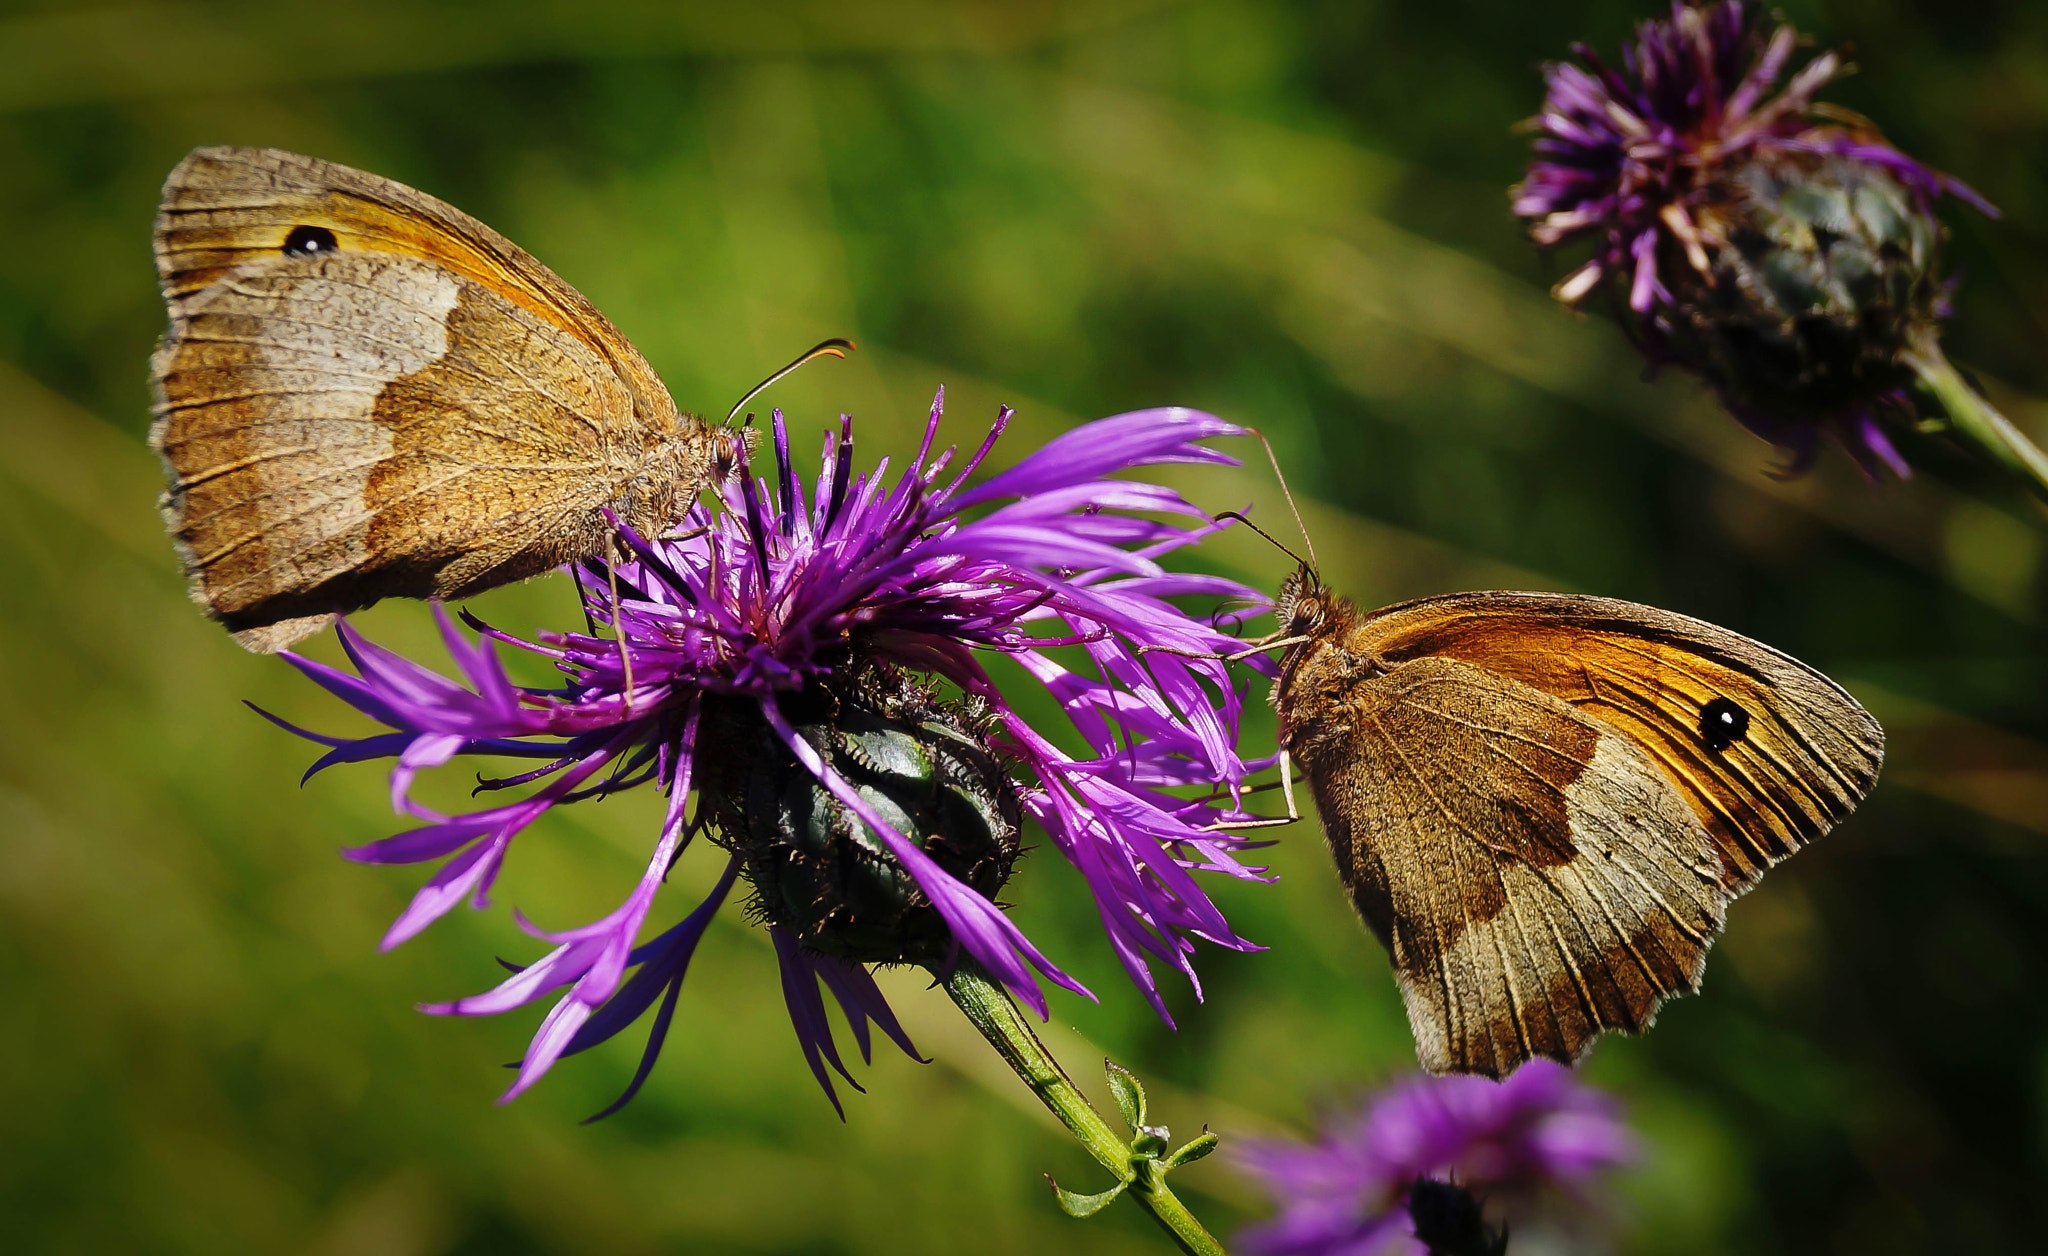 Photograph Butterfly x 2 by Ralf Bessoth on 500px